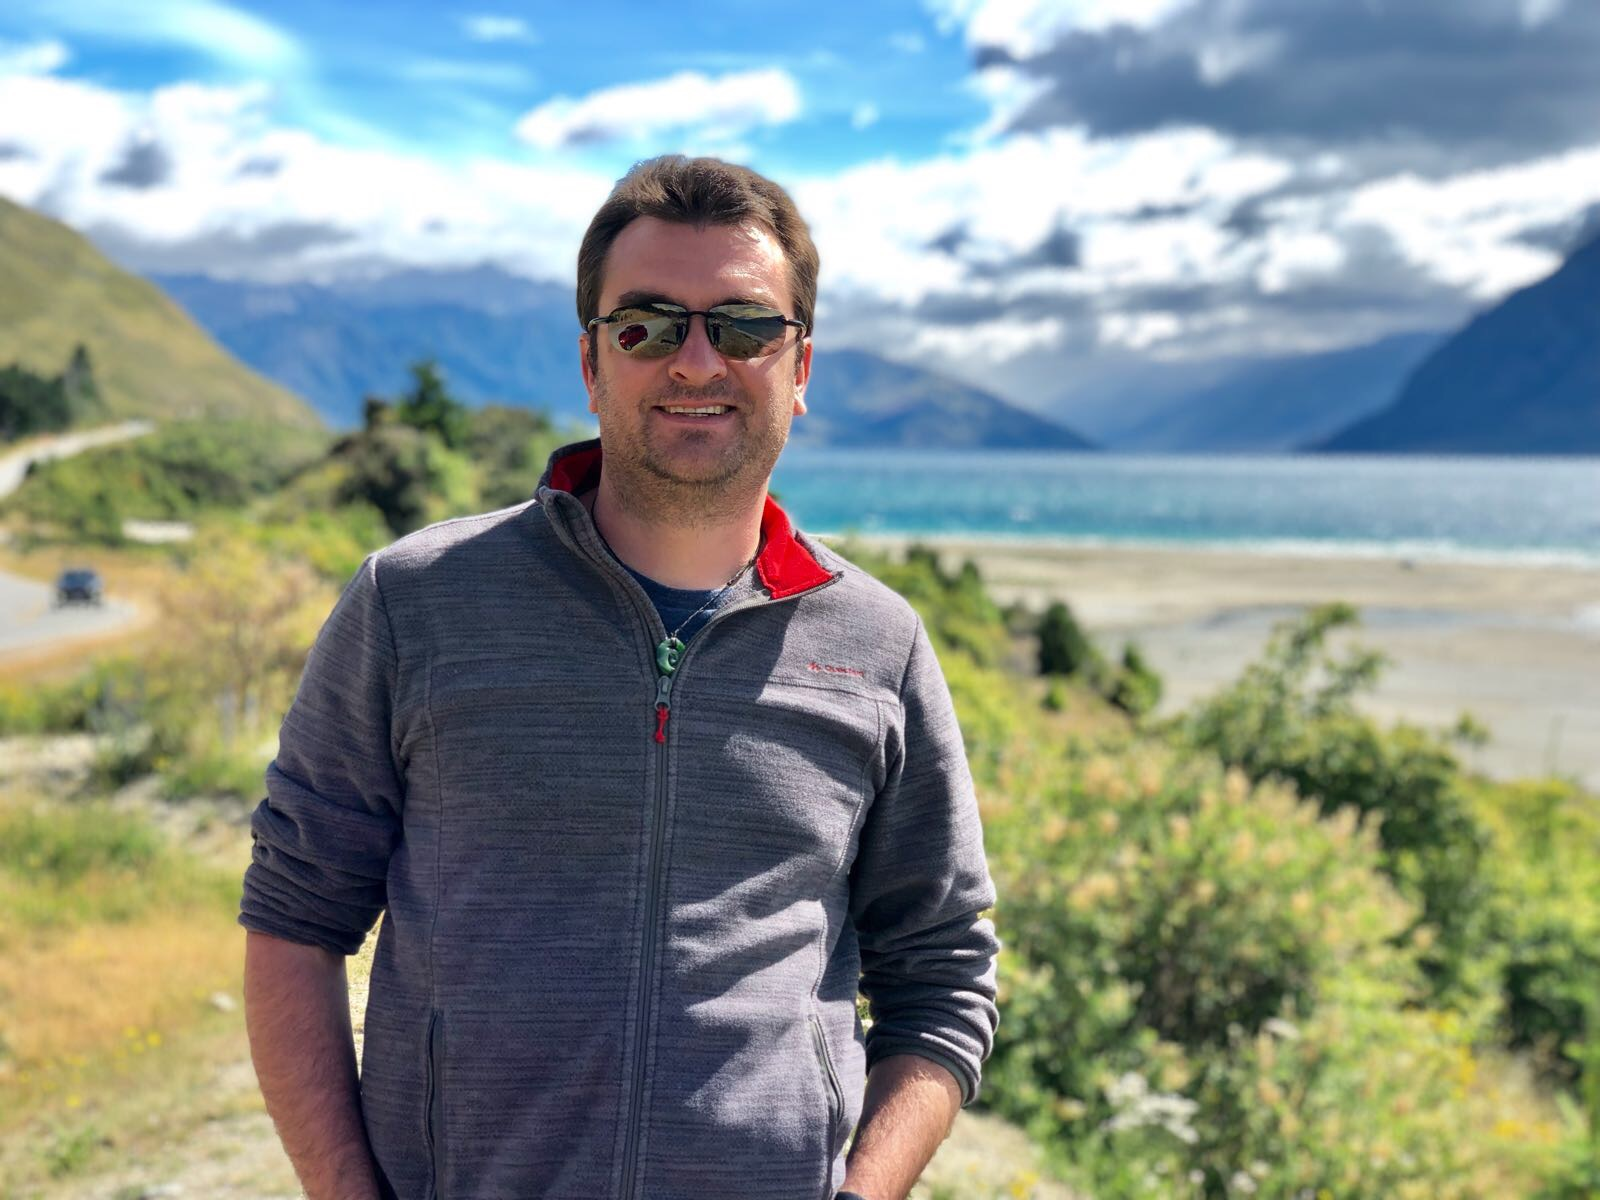 Christopher cochet - Chris is a consultant for Deloitte, and is living his NZ dream right now. World traveller used to live in Europe, then in America. Discover how Chris changed his life with meditation.